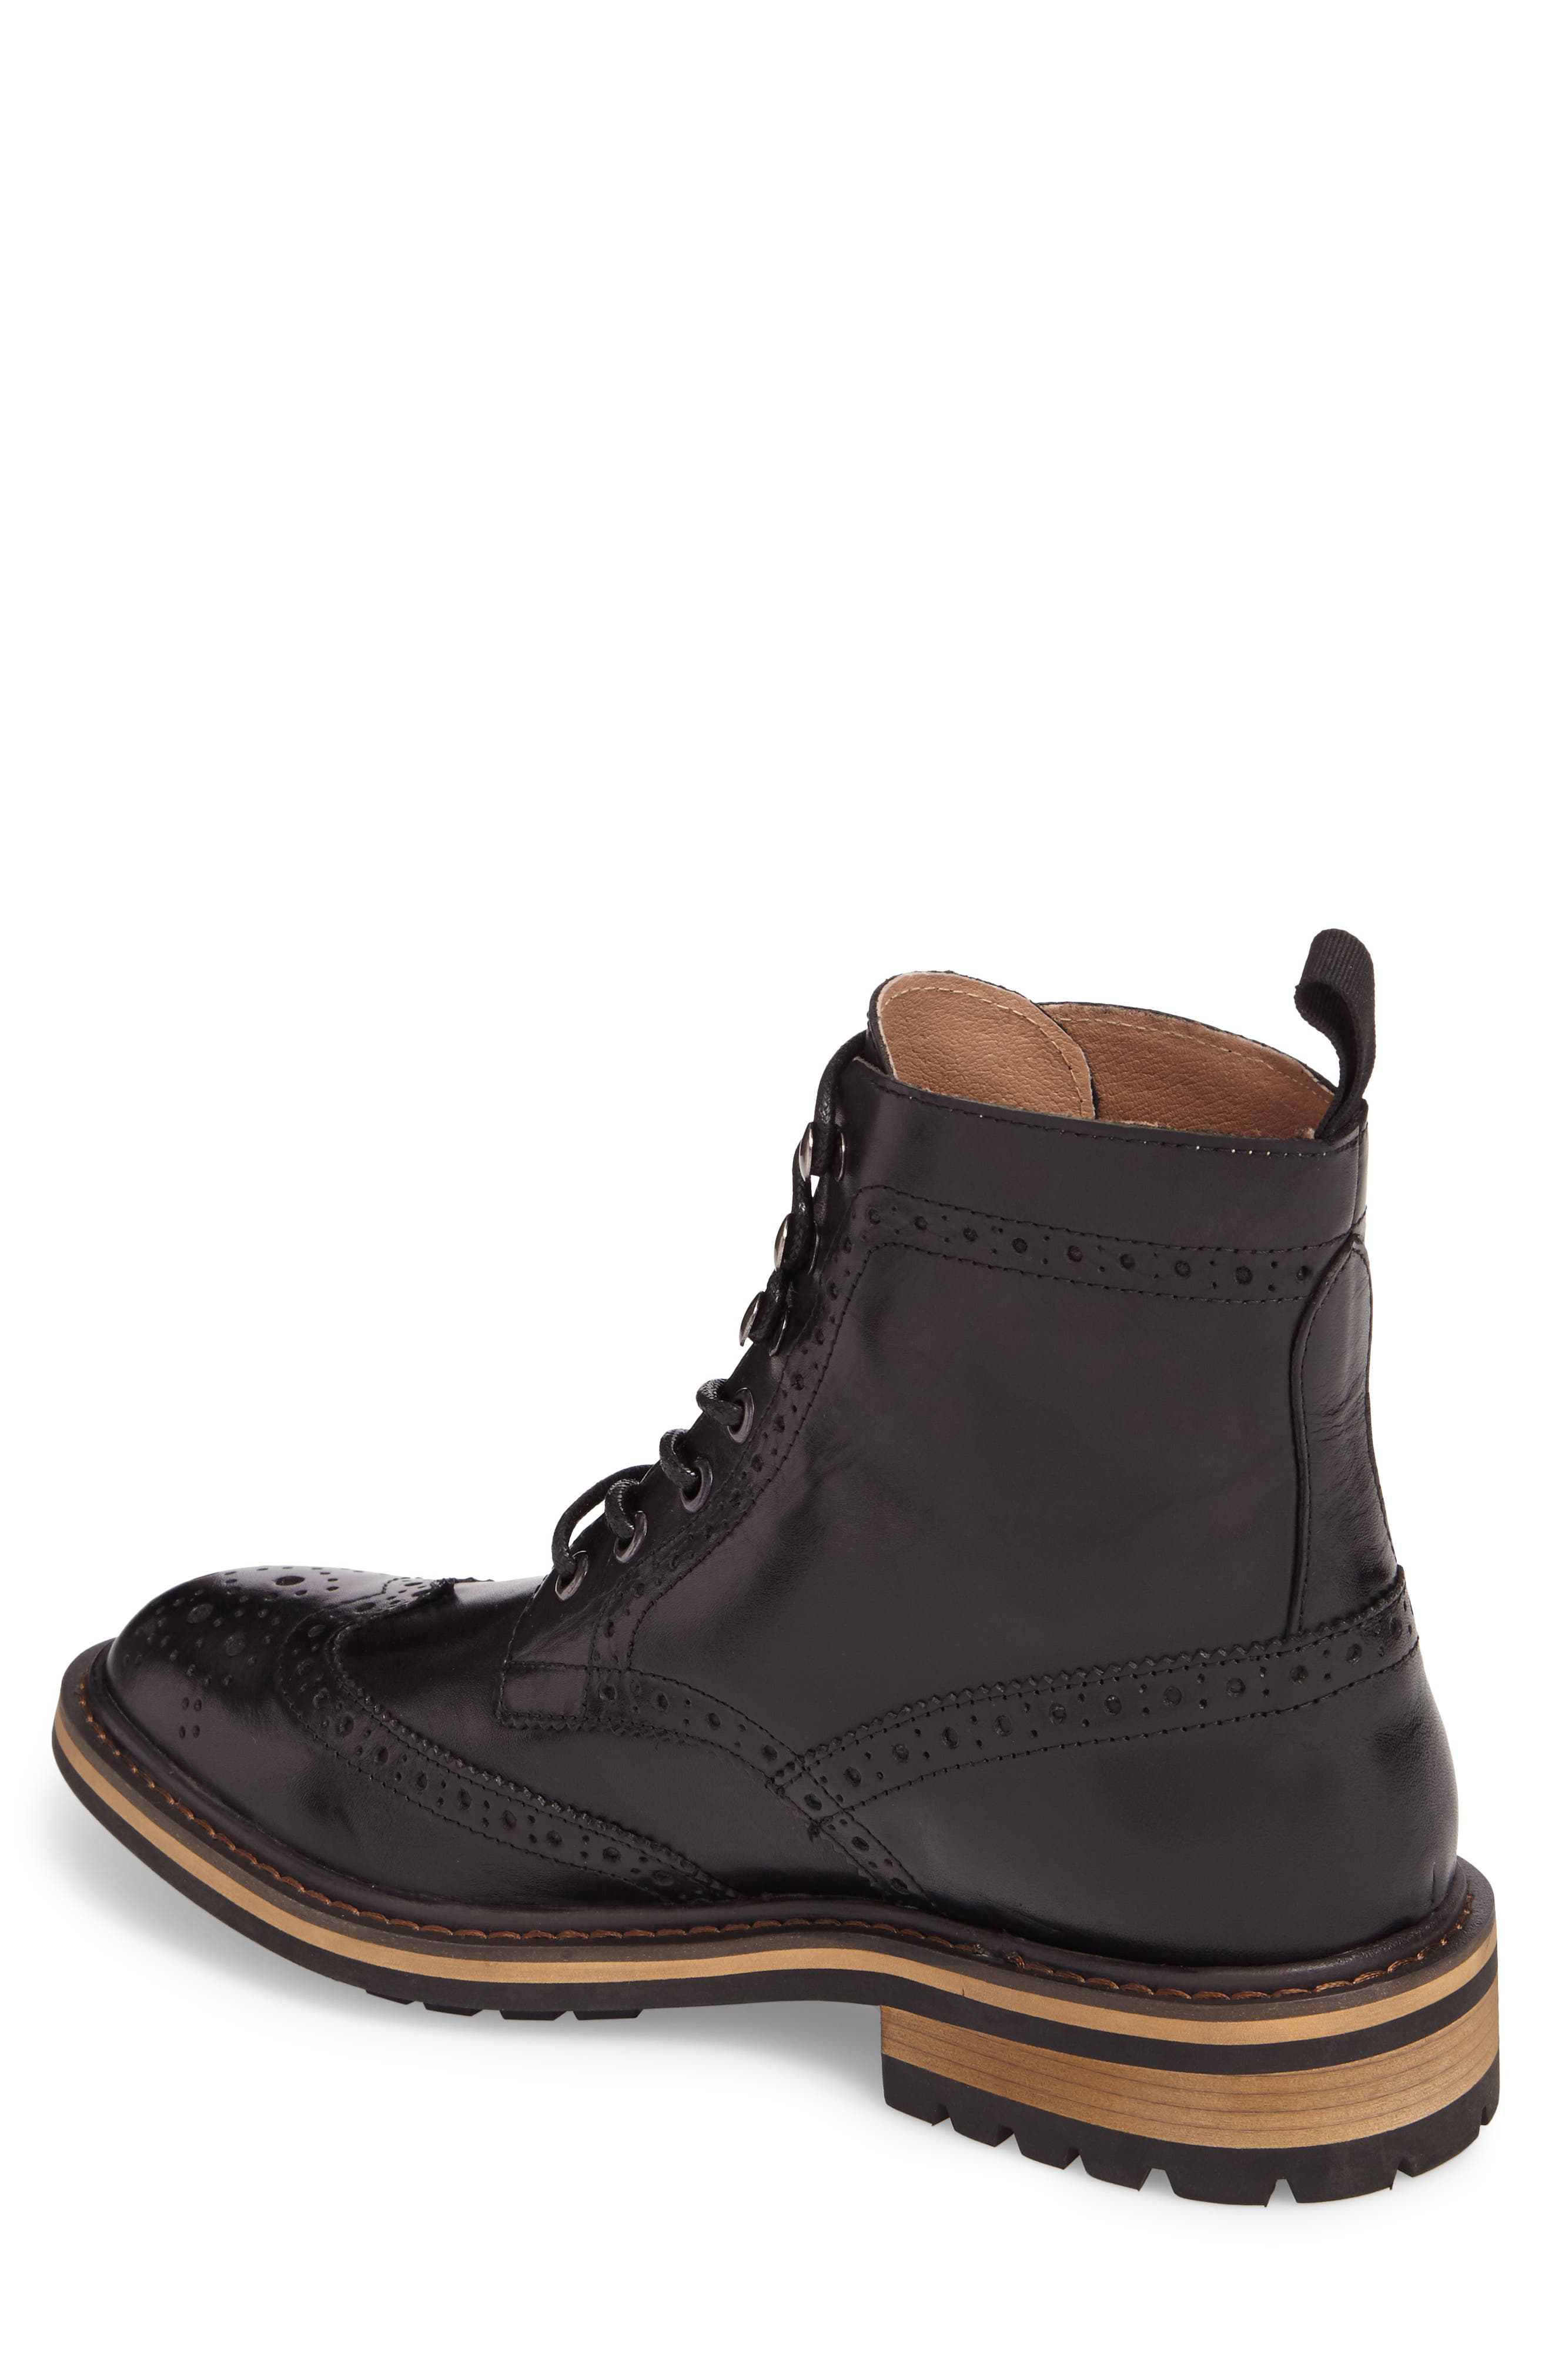 Grange Wingtip Boot,                             Alternate thumbnail 2, color,                             Black Smooth Leather